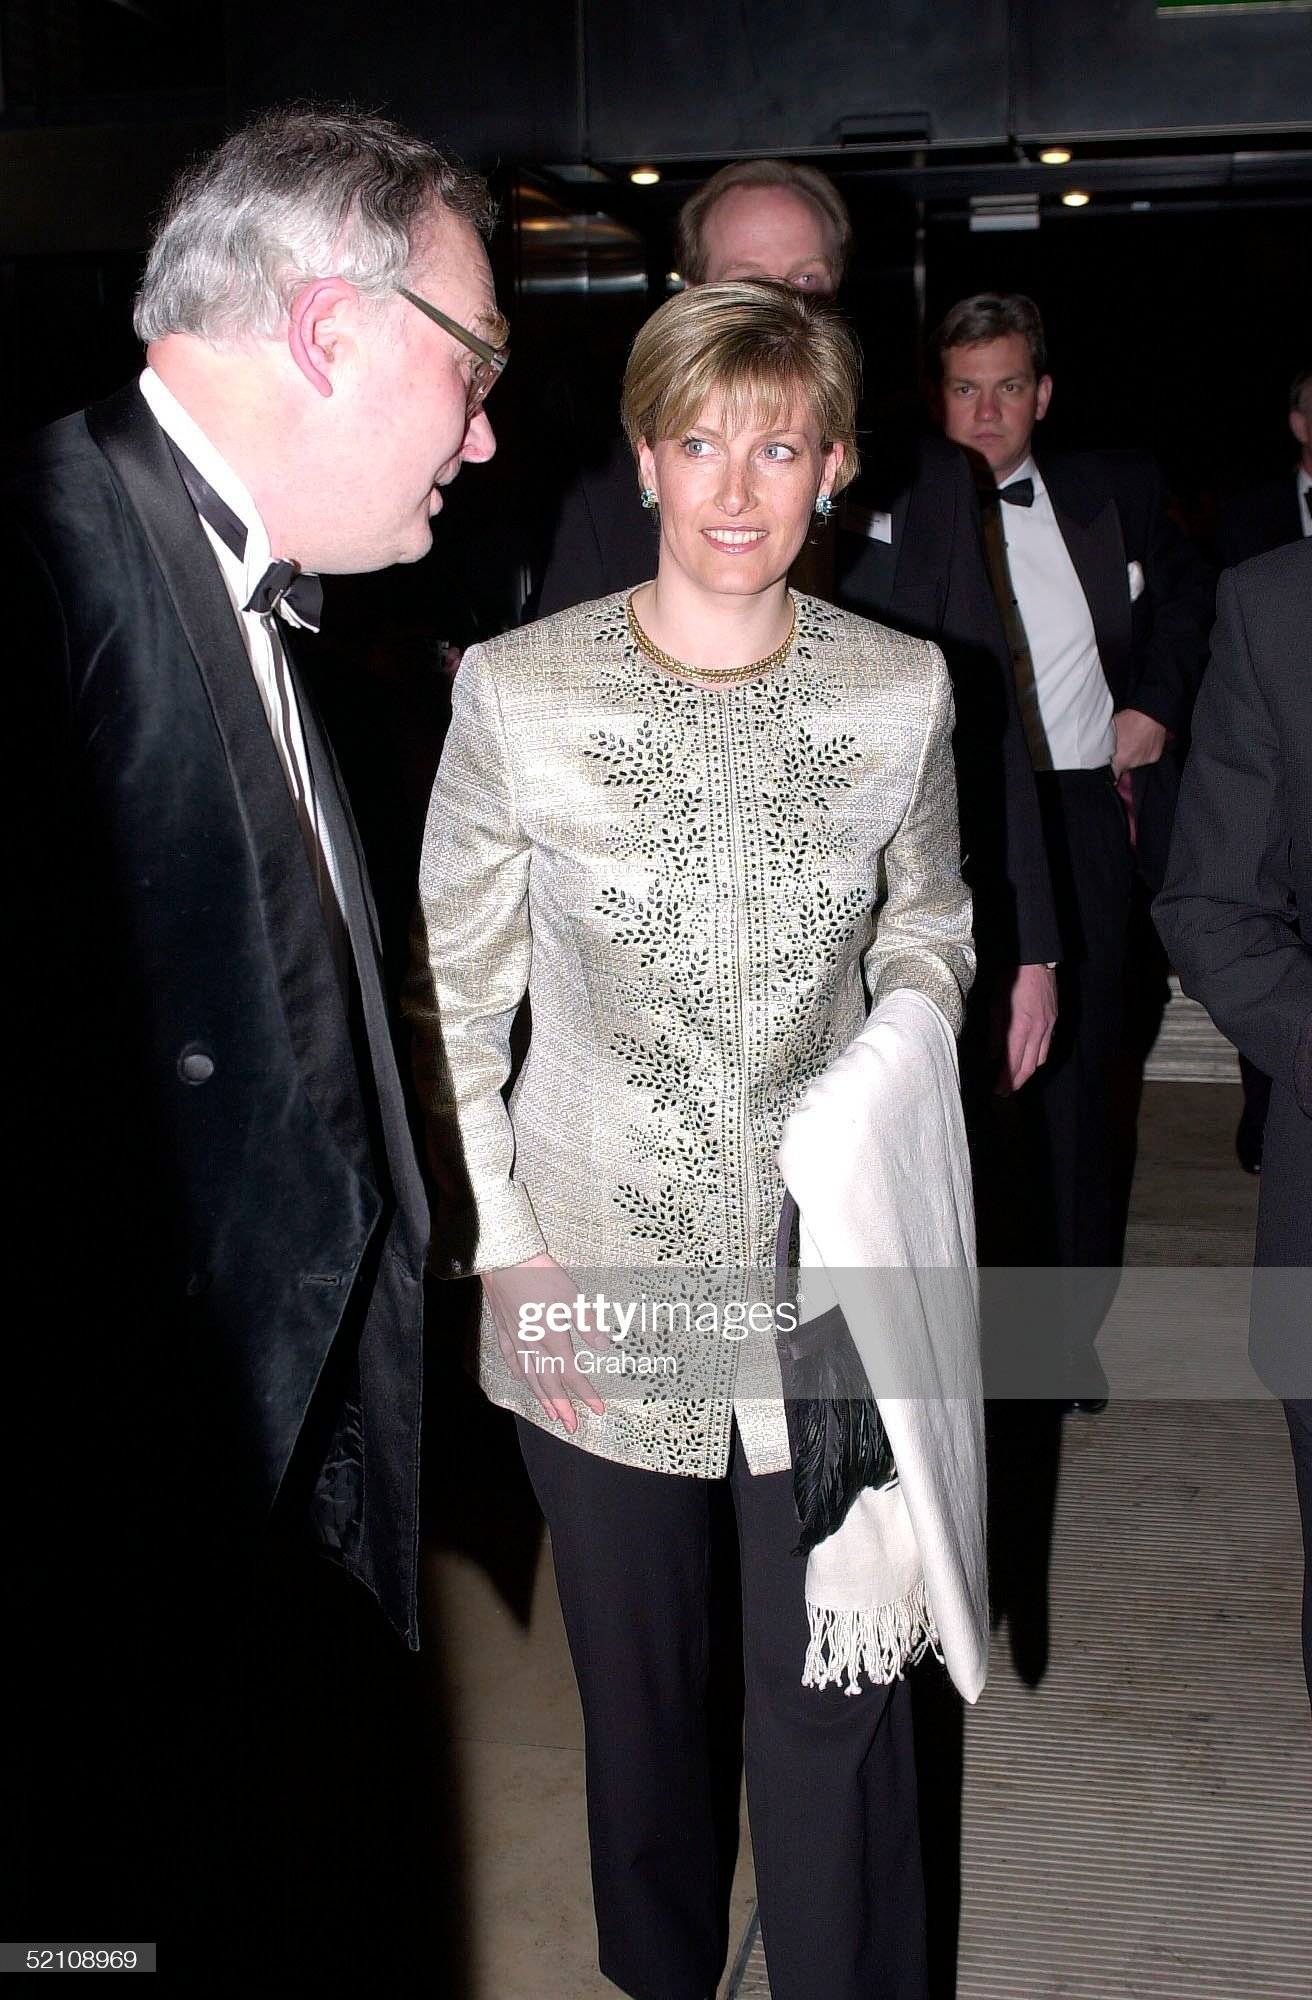 Sophie Wessex At Gala : News Photo